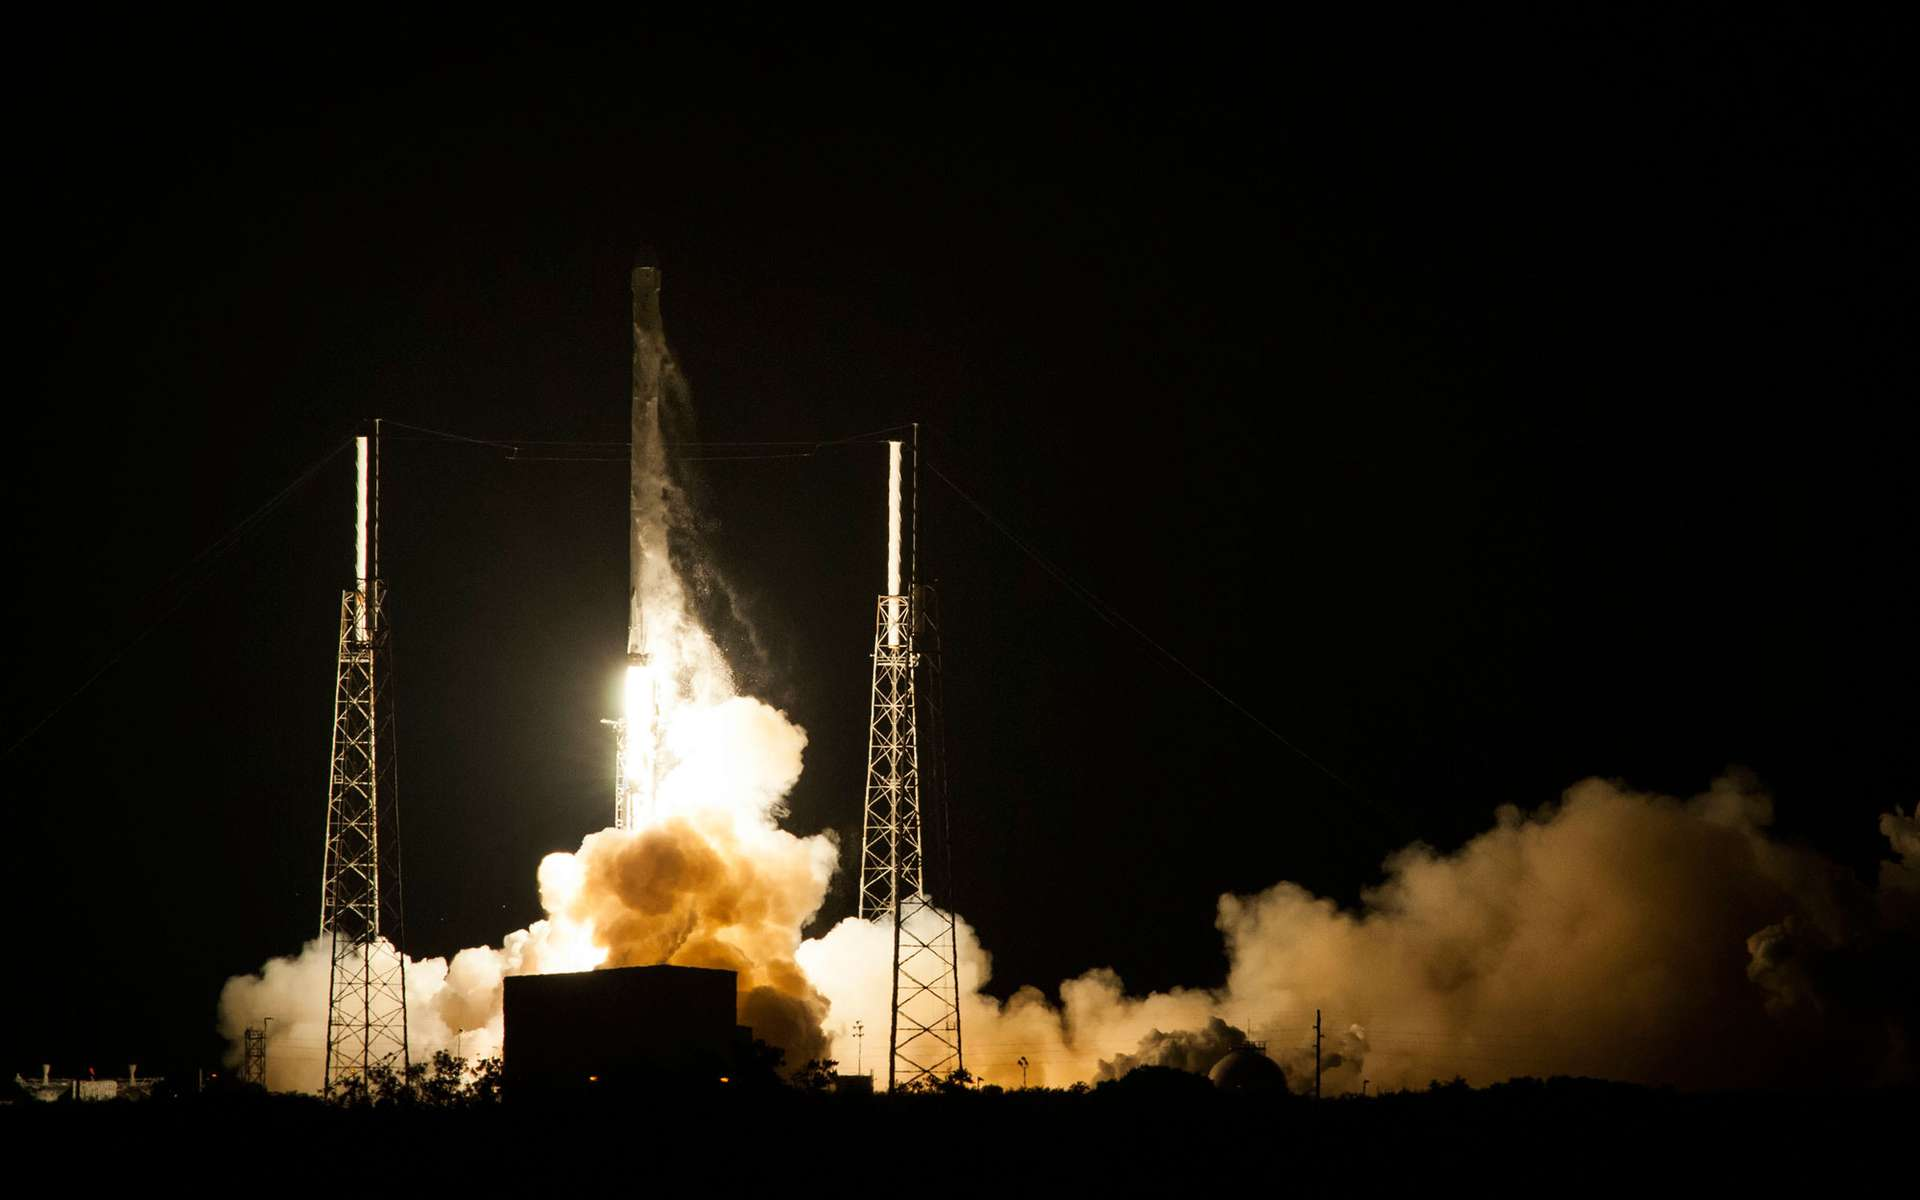 Le Falcon 9 contient à son bord la capsule Dragon, destinée à ravitailler la Station spatiale internationale. © SpaceX